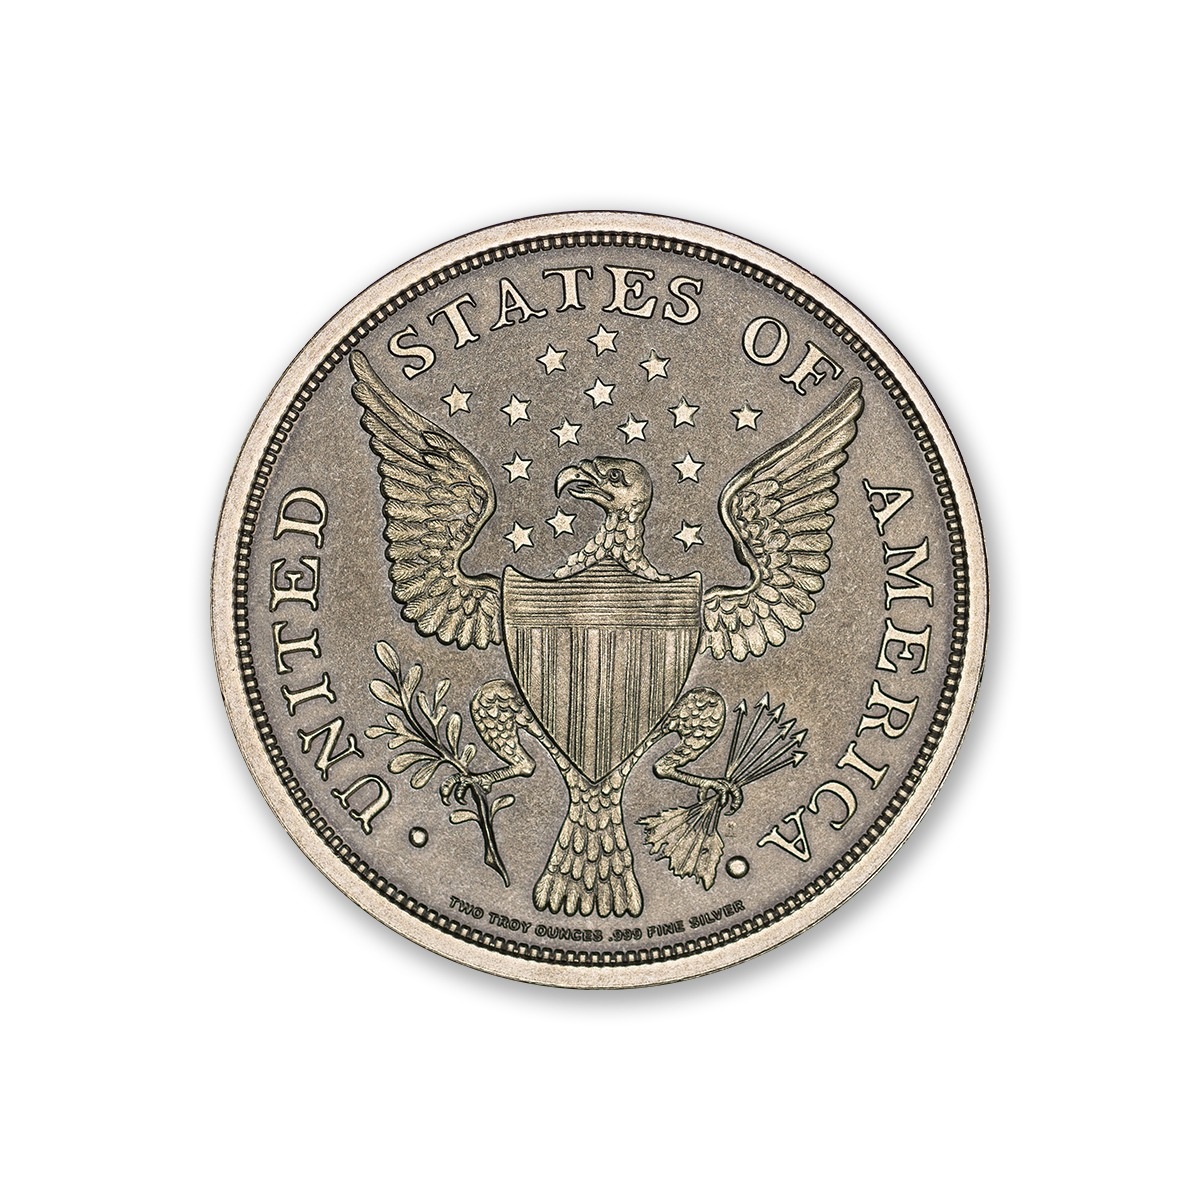 Colonial Tribute Series - Getz Washington - 2 ozt. 39mm .999 Fine Silver Art Medal with Antique Finish (6mm Thick)